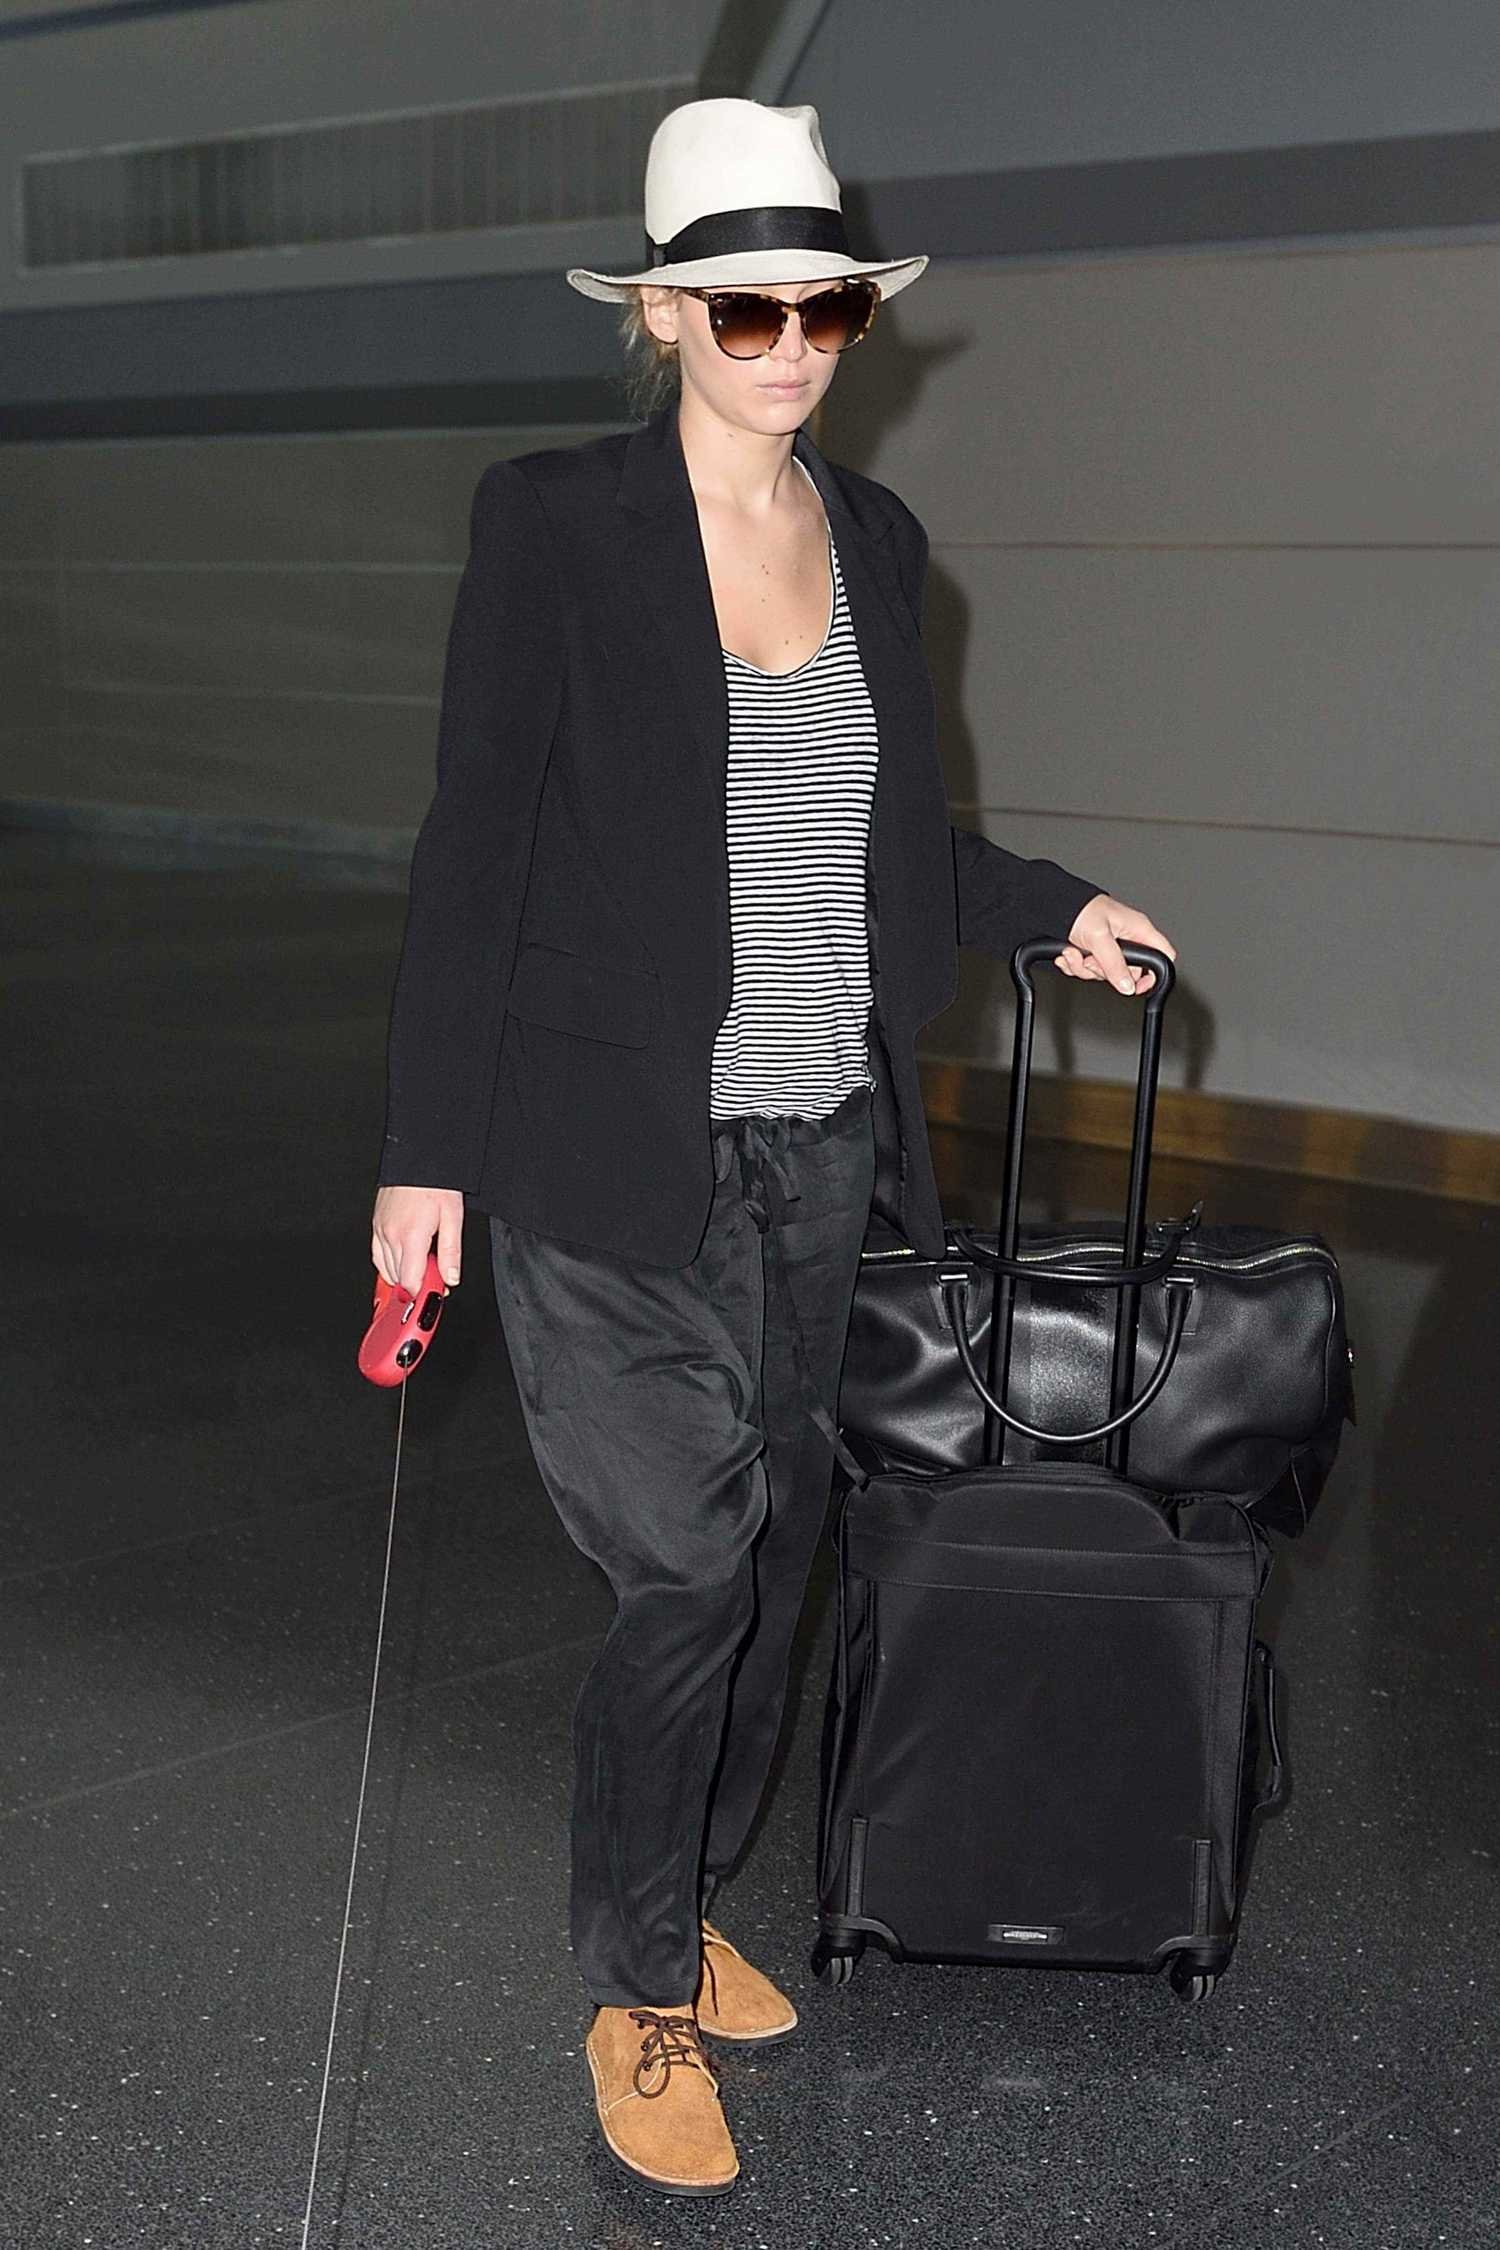 http://jenniferlawrencedaily.com/gallery/albums/userpics/10001/Walking_Her_Dog_at_JFK_Airport_-_June_22-01.jpg